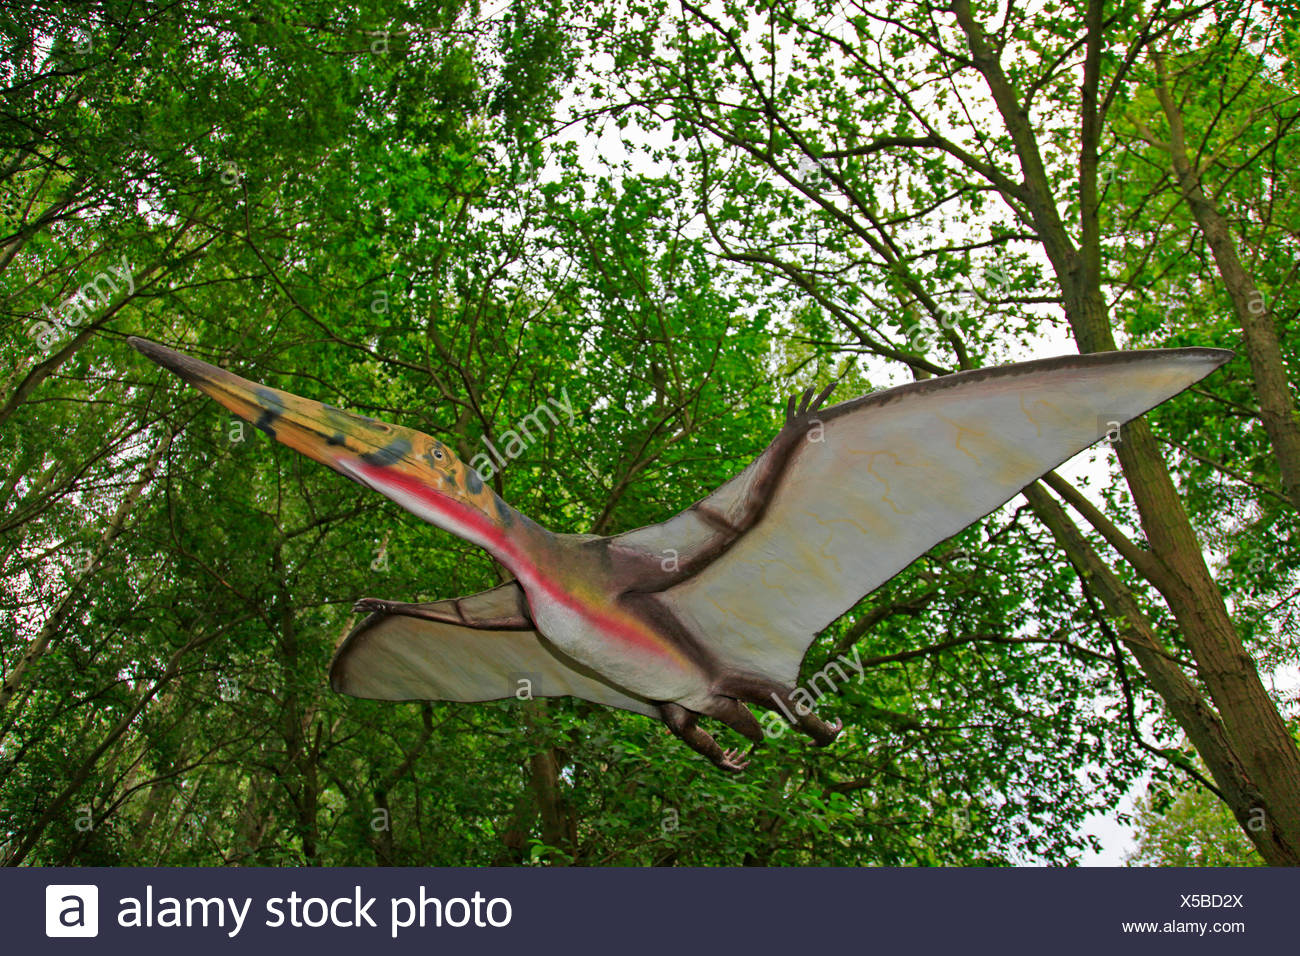 Pterodactylus (Pterodactylus), flying in a forest - Stock Image